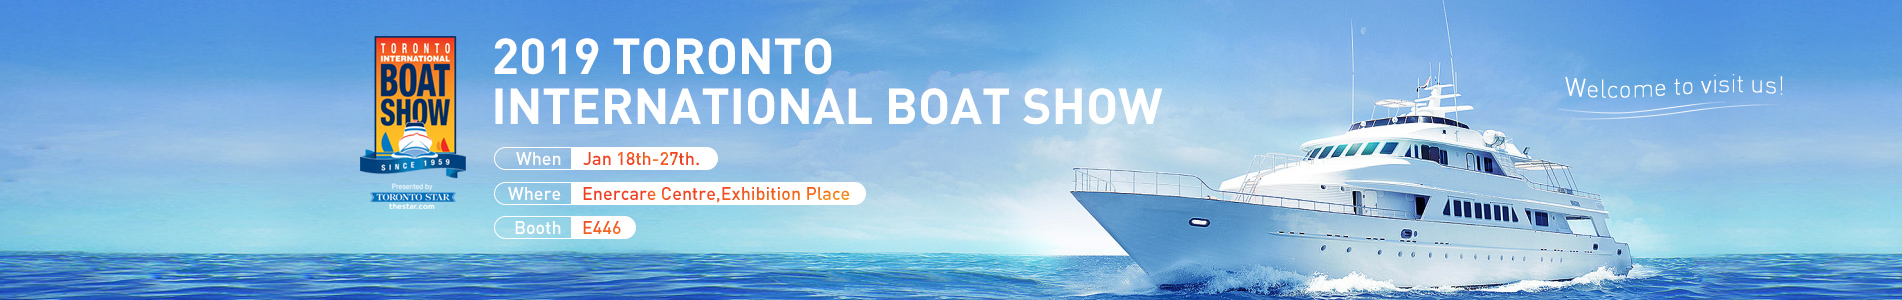 SEAFLO team will attend 2019 Toronto International Boat Show